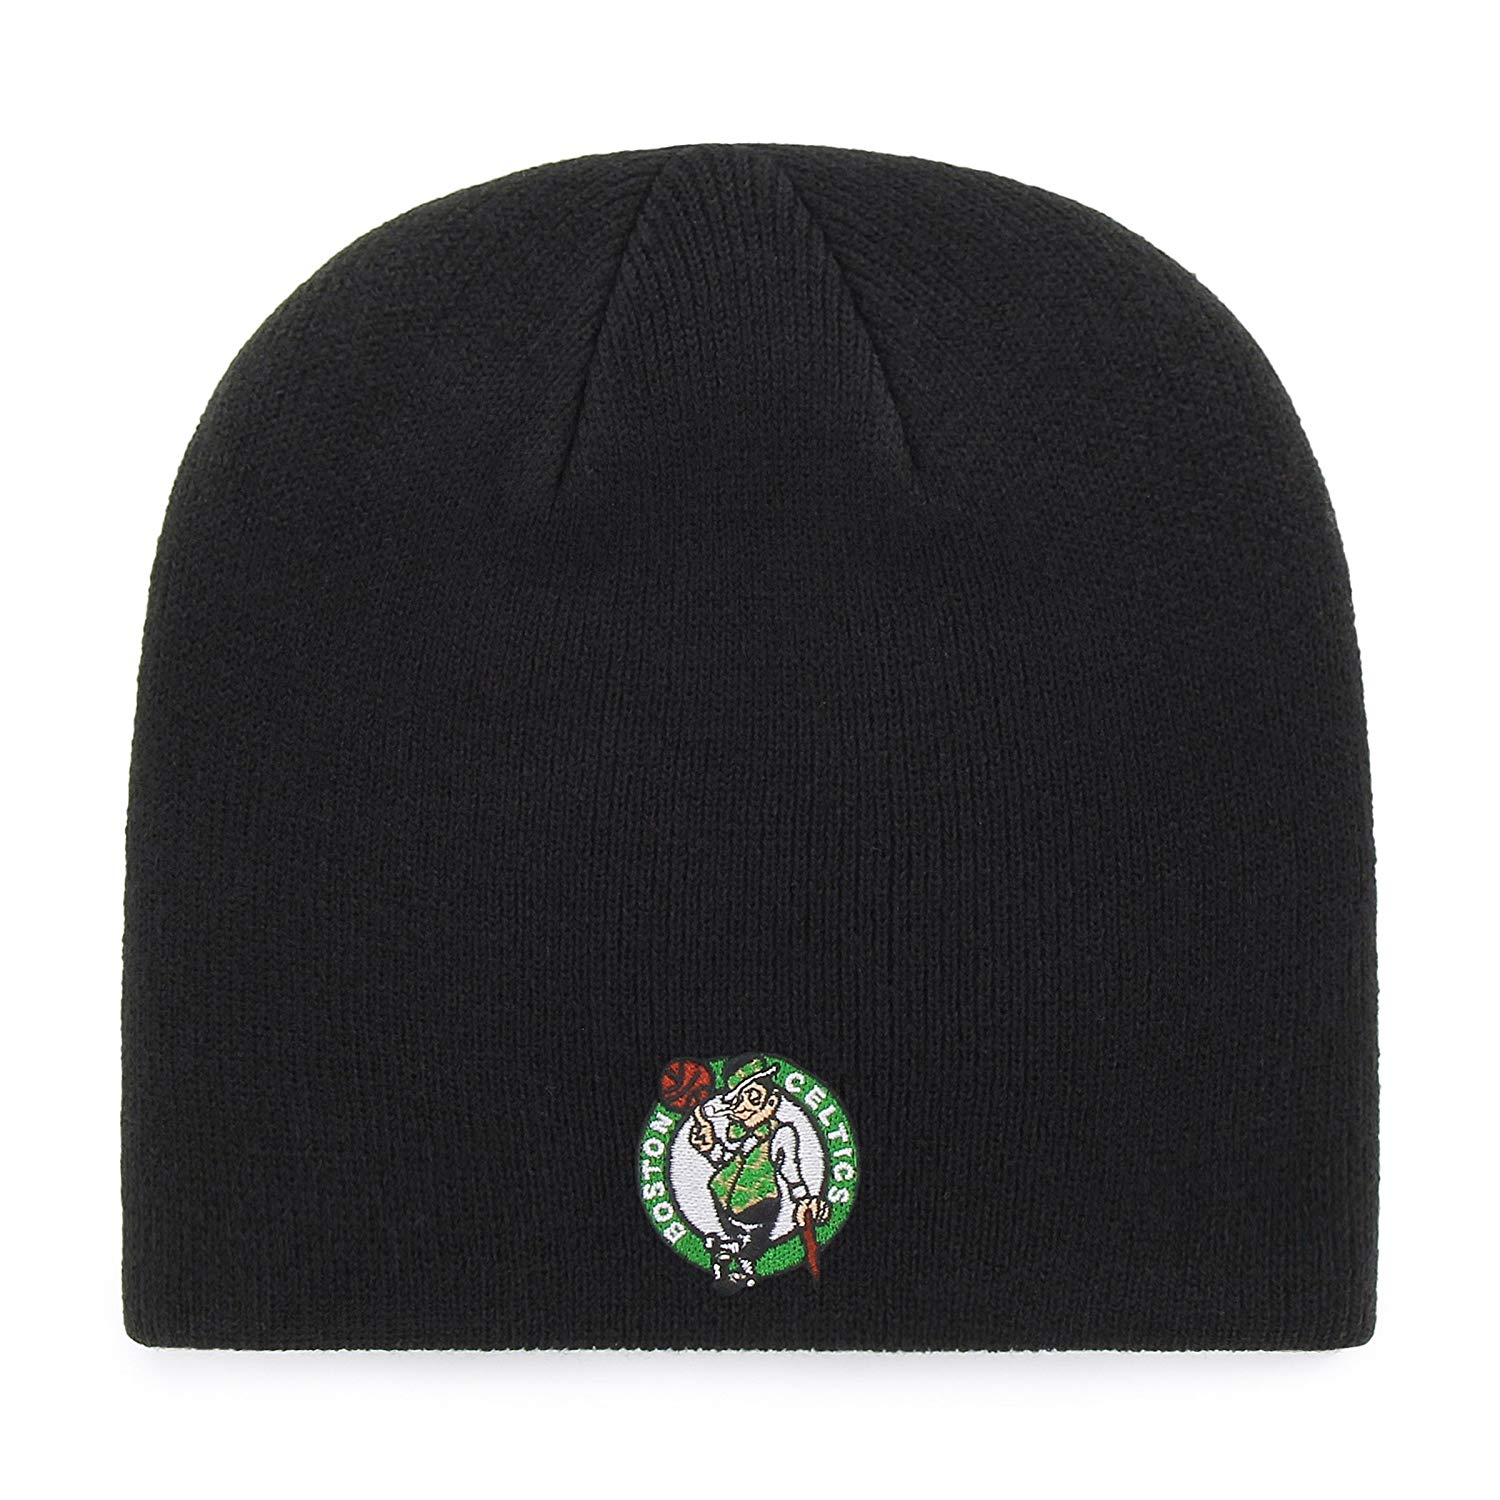 OTS NBA Adult Men's NBA Beanie Knit Cap